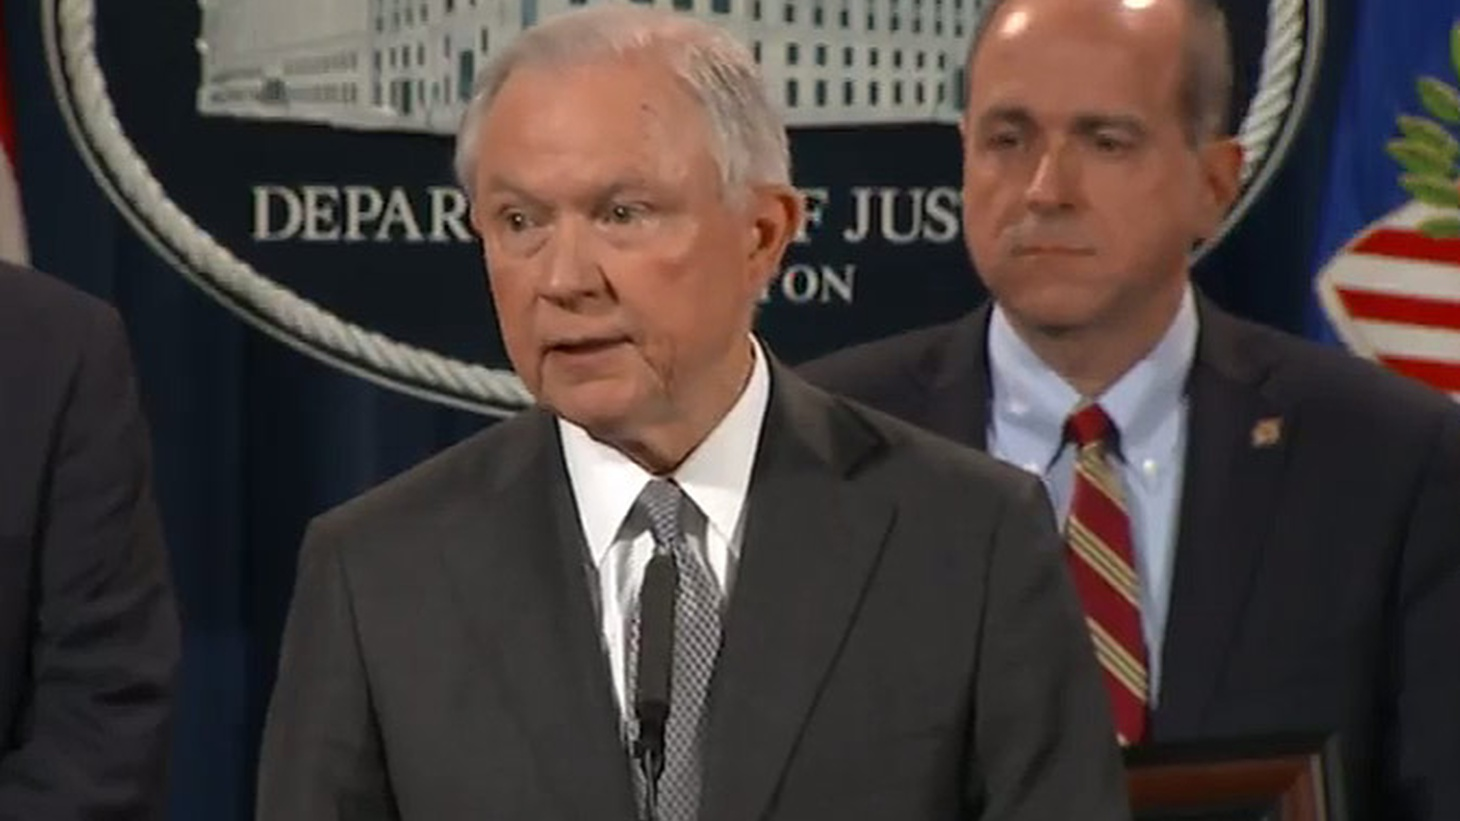 Barack Obama's Attorney General, Eric Holder, ordered federal prosecutors not to bring charges against minor drug offenders that could lead to lifelong penalties. Today, Attorney General Jeff Sessions said those days are over.